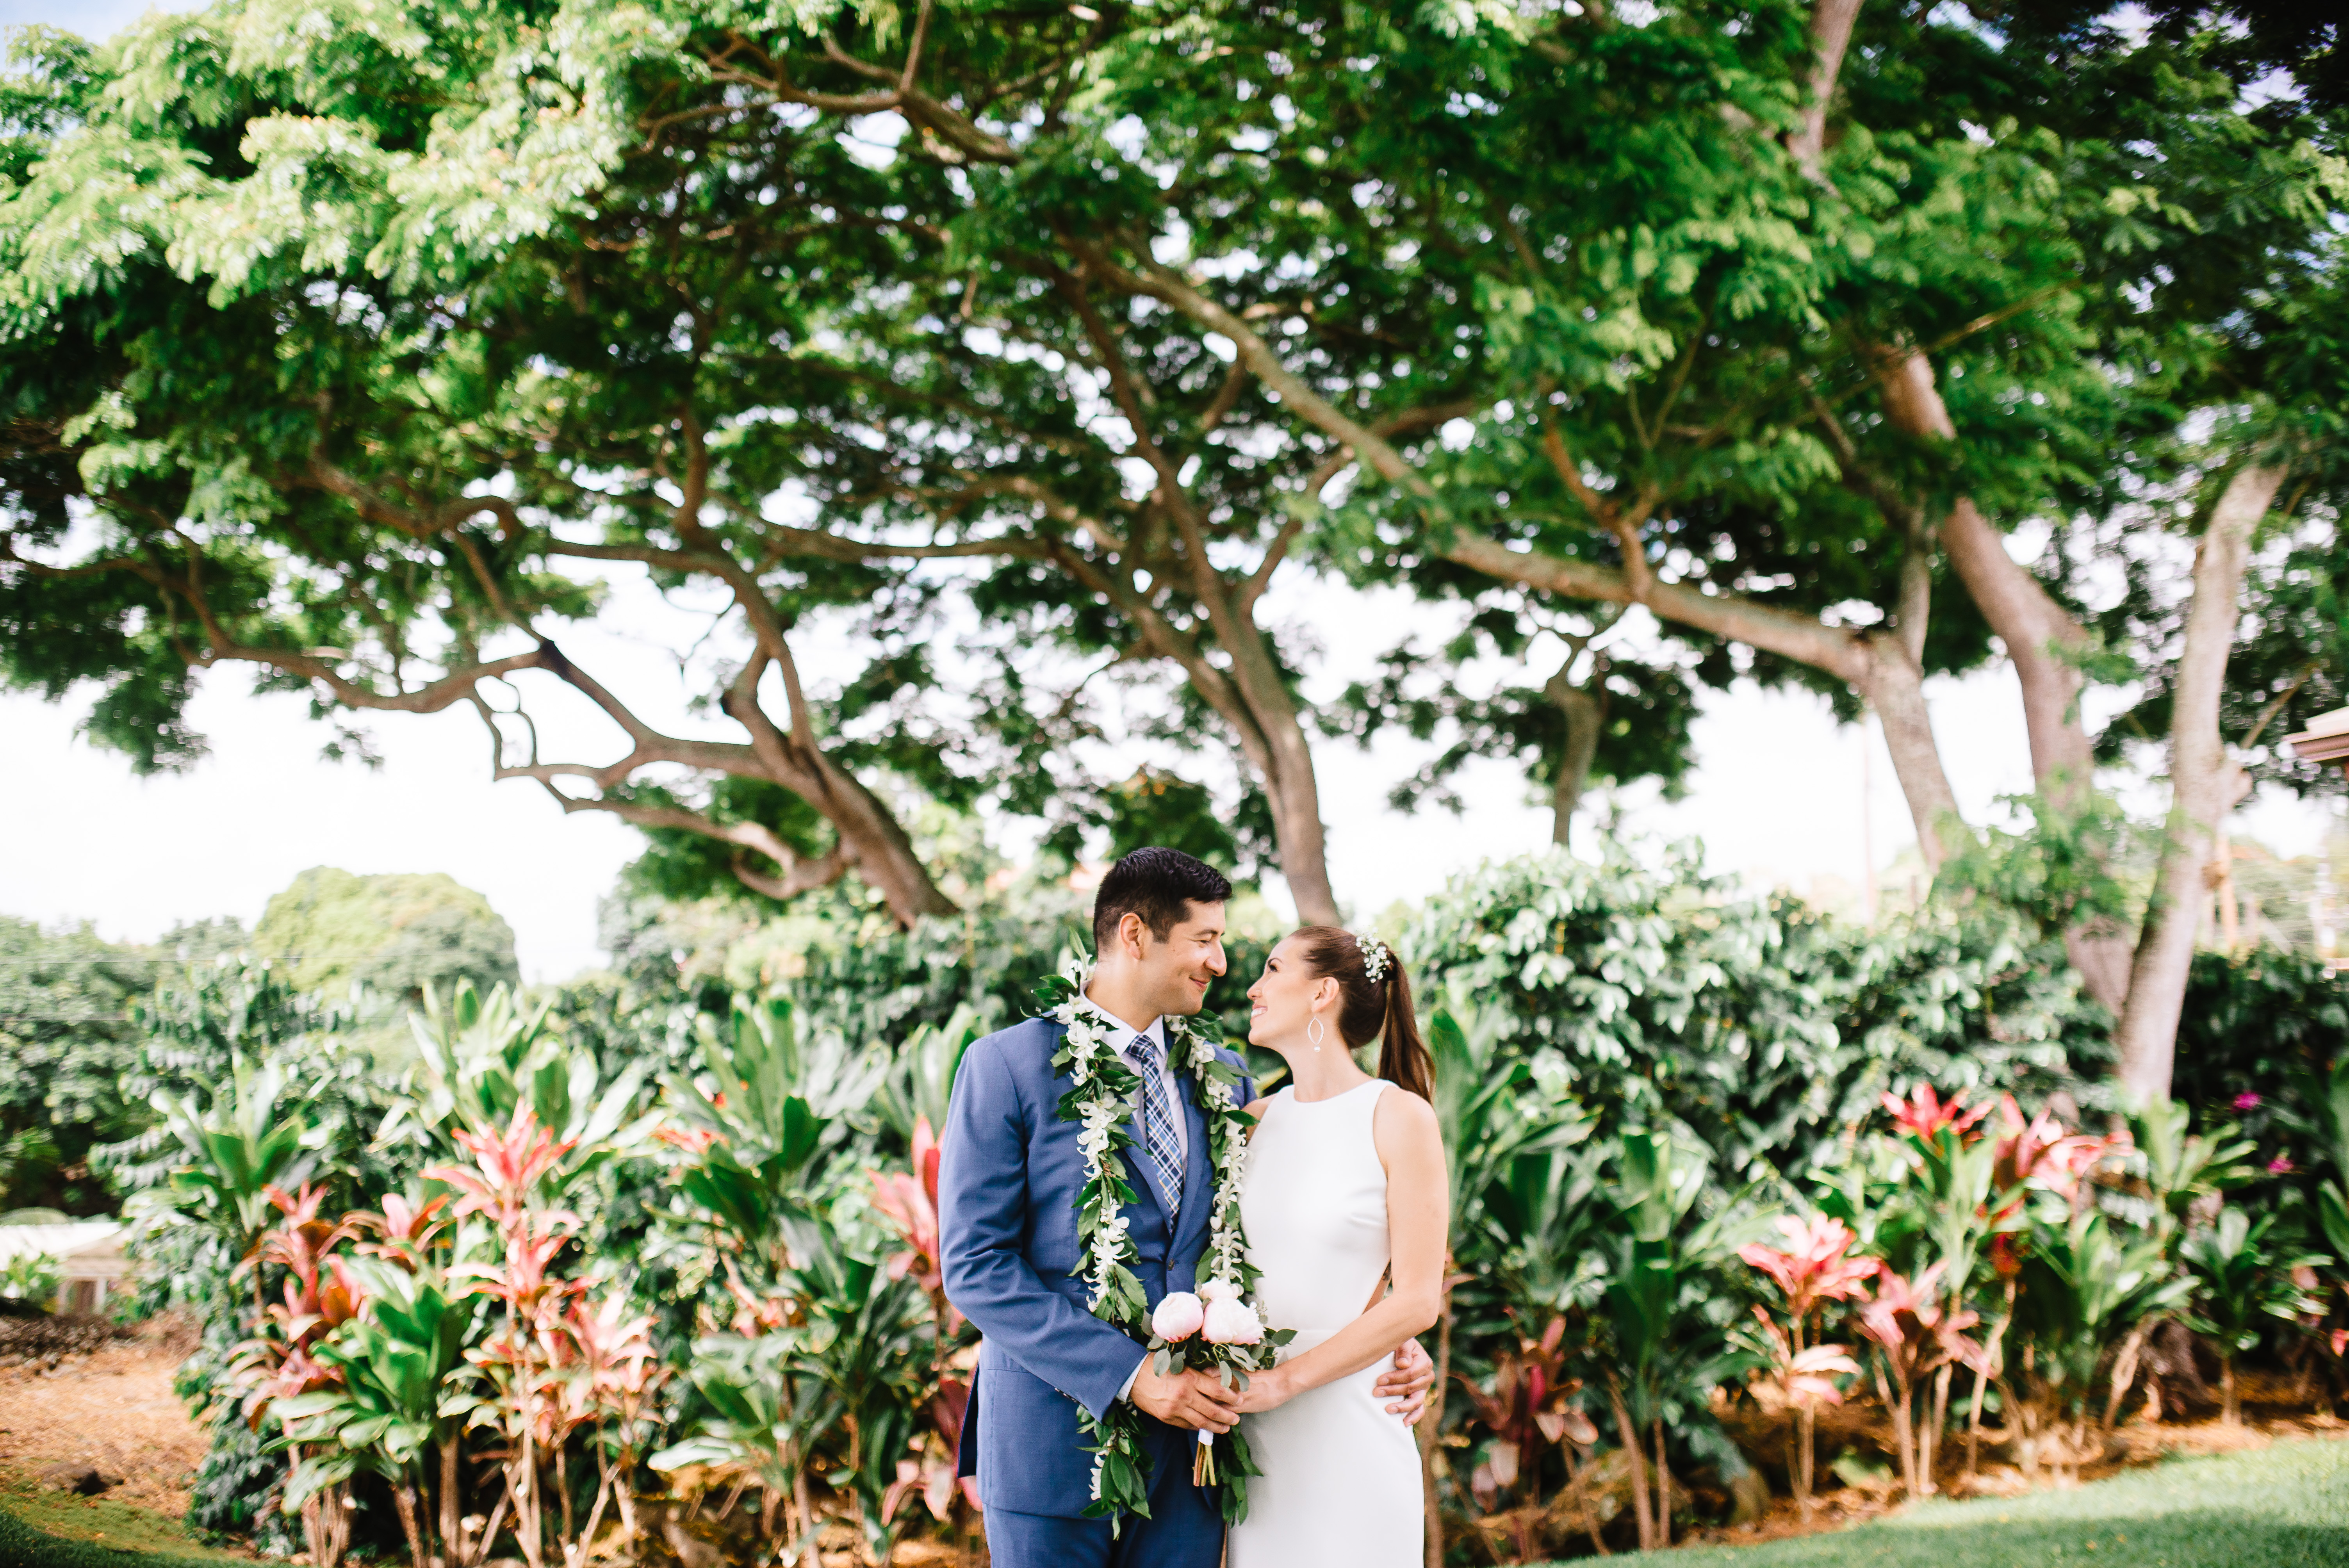 Bride and groom during their intimate wedding in Hawaii